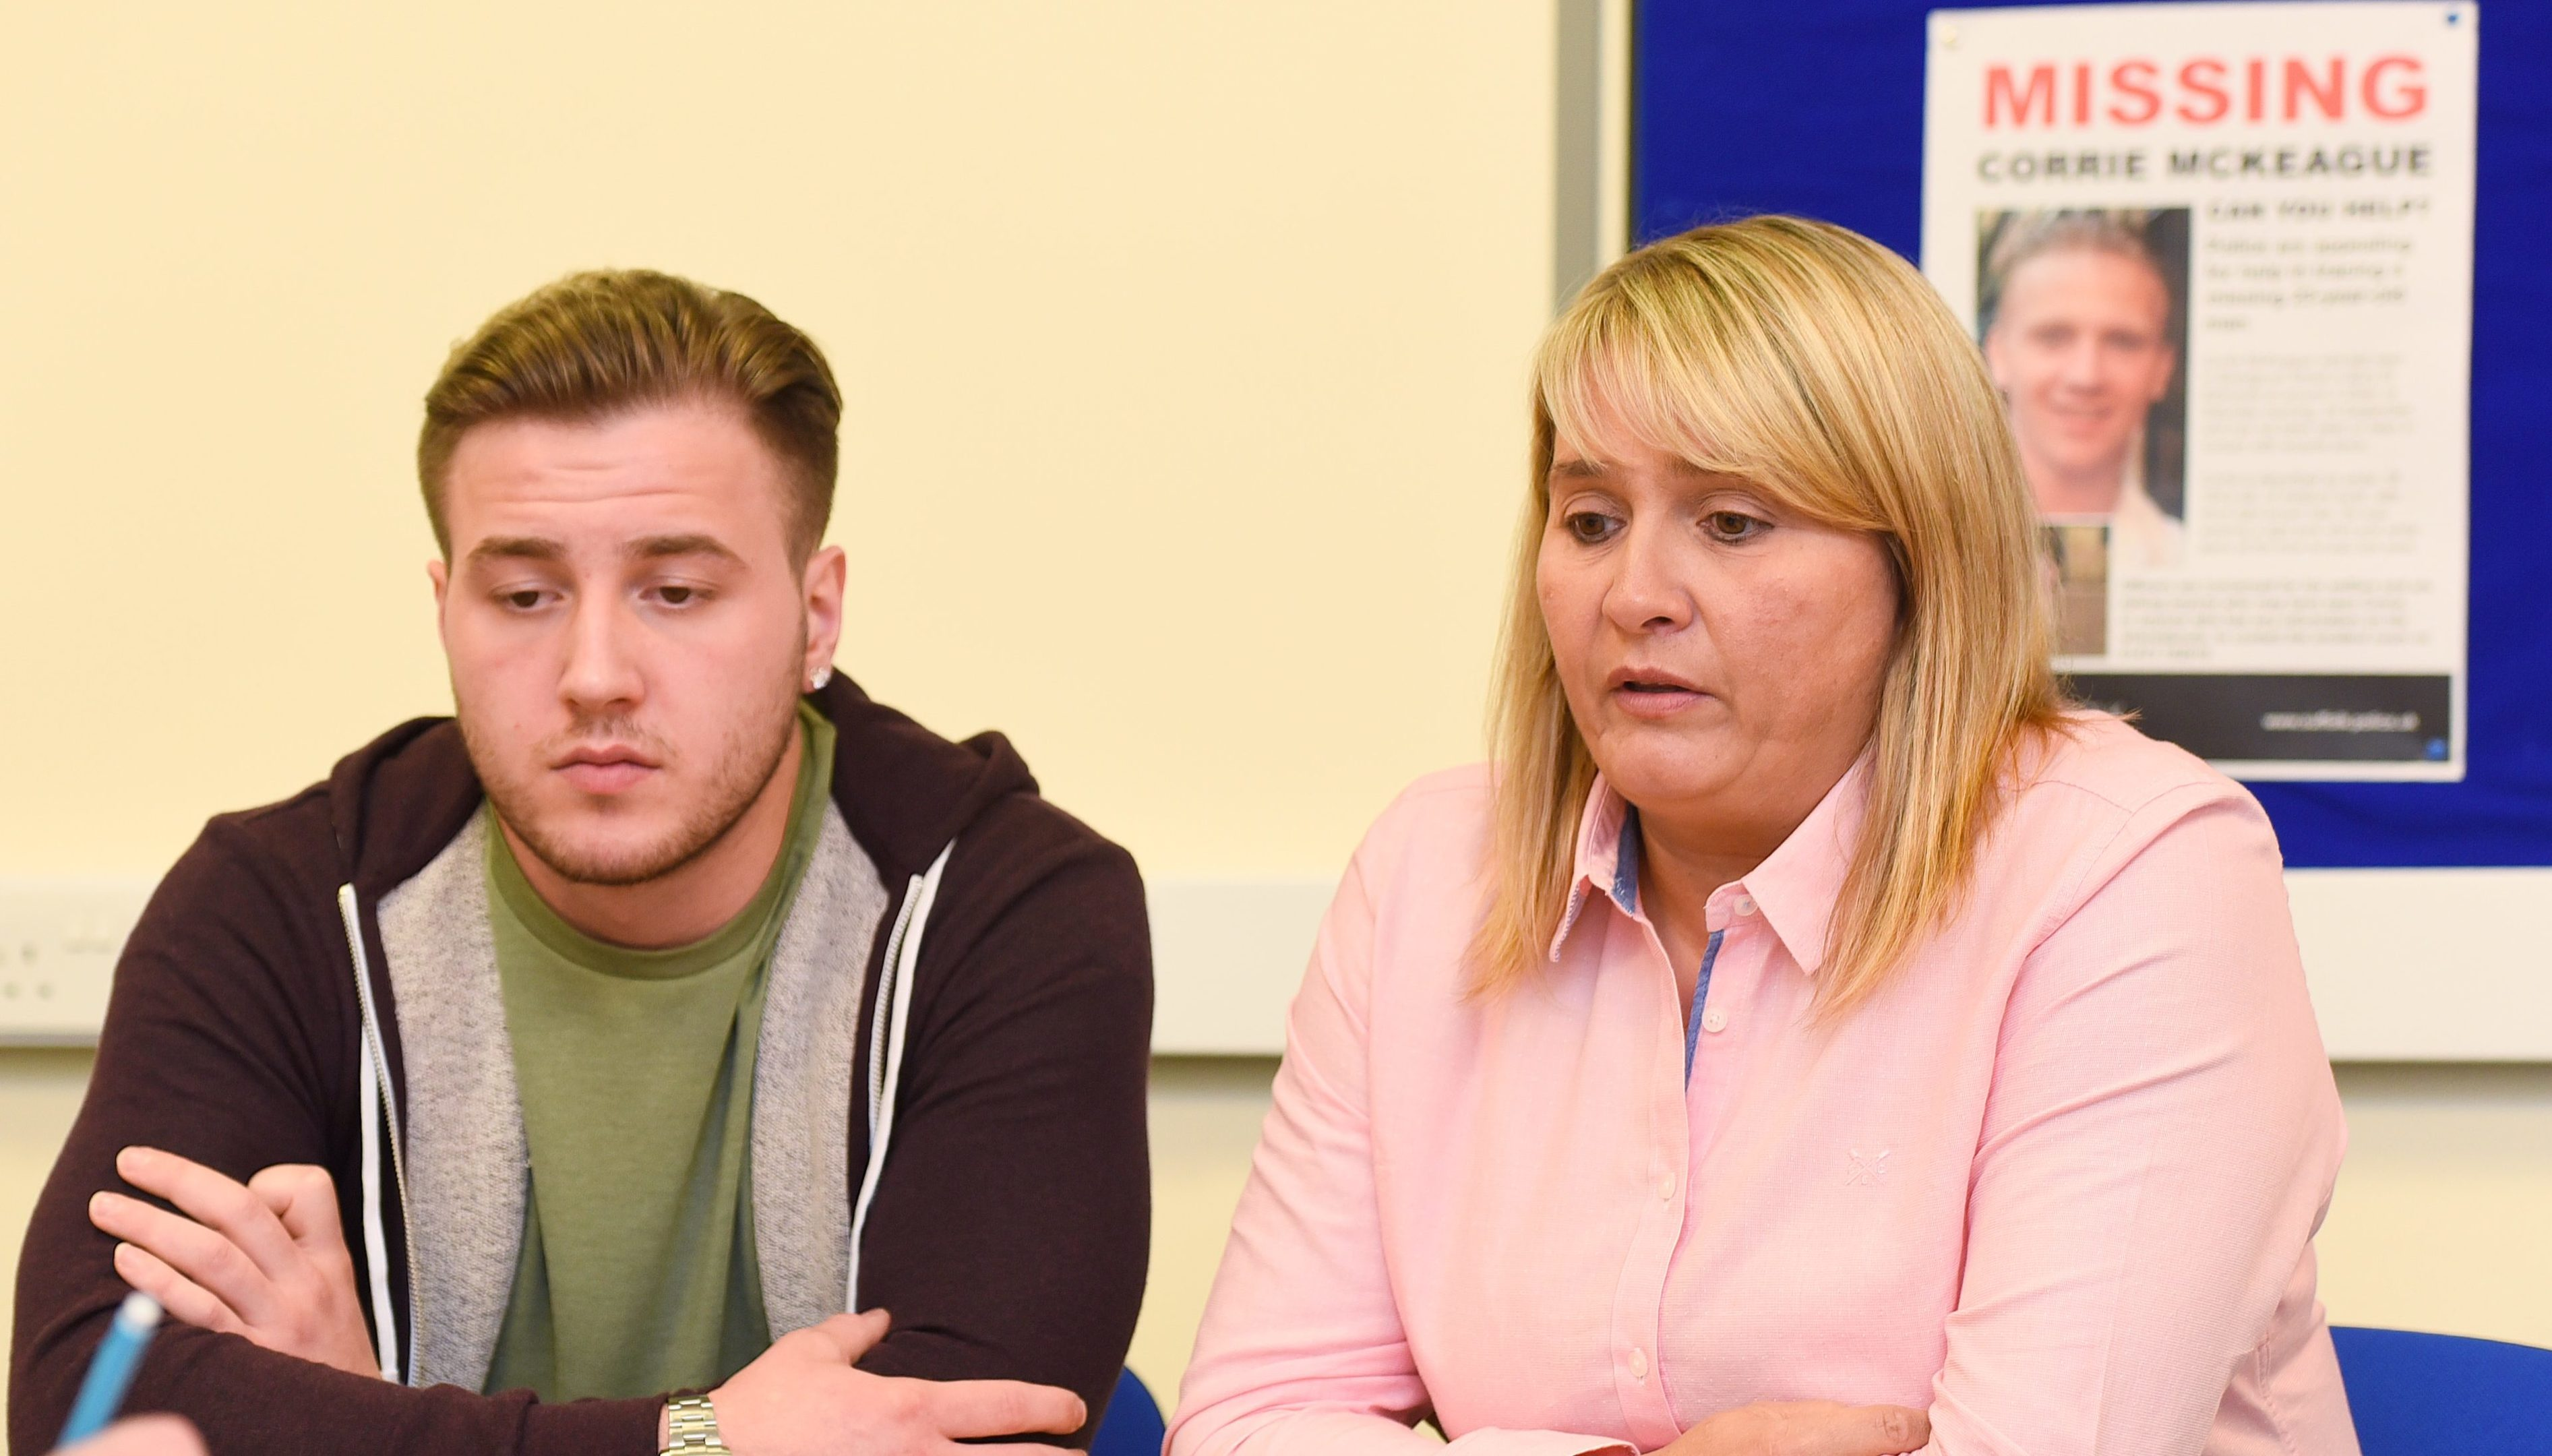 Nicola Urquhart pictured here with Corrie's brother Darroch McKeague.